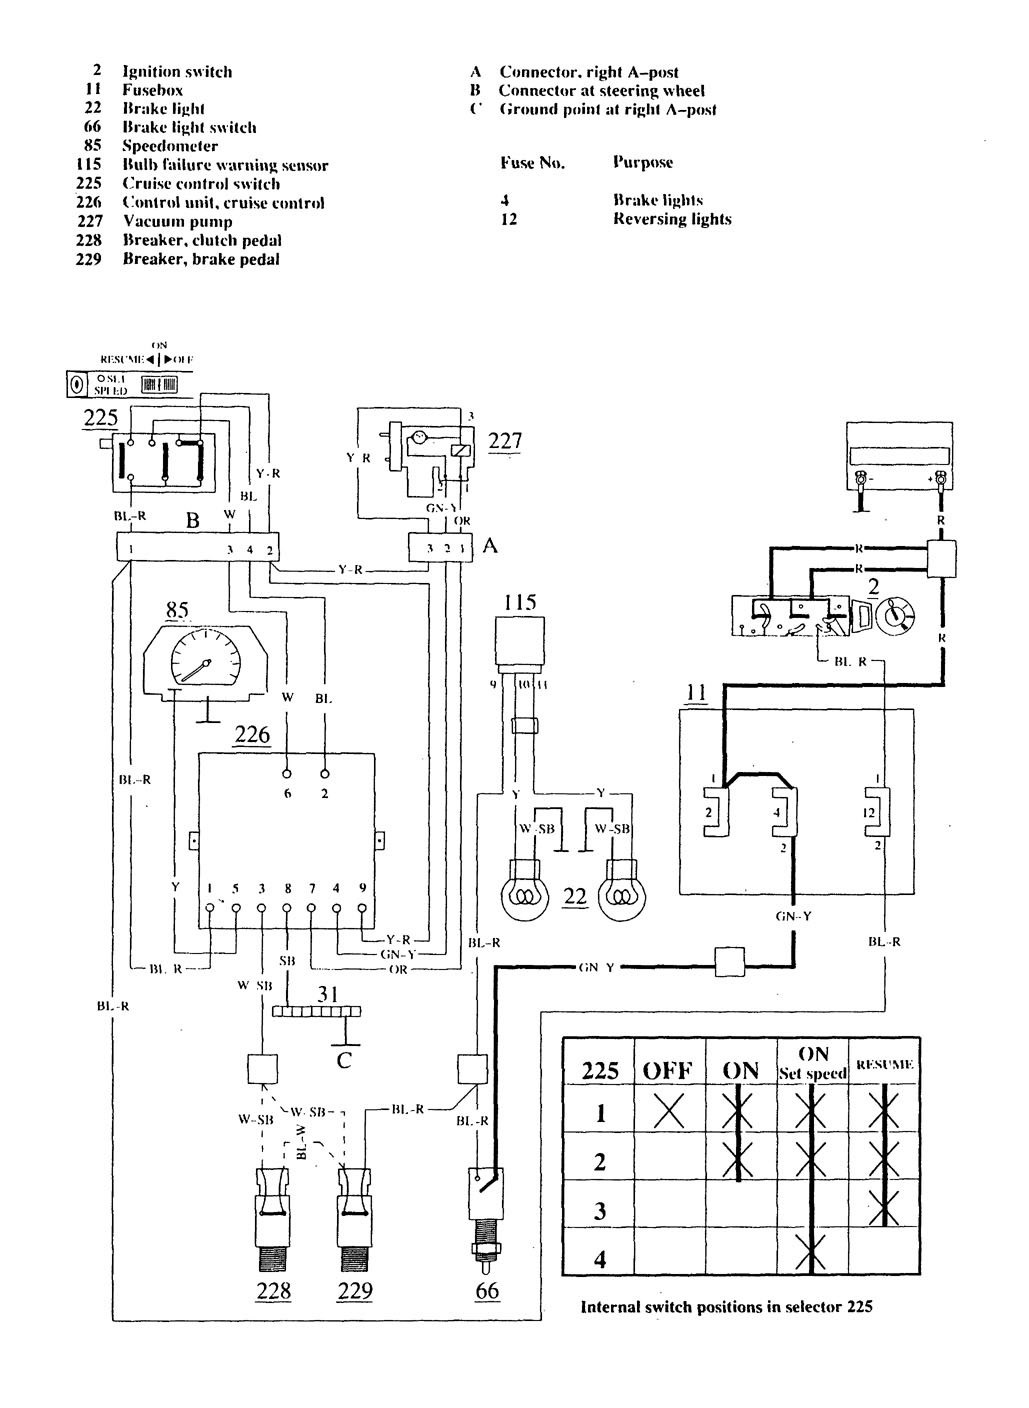 Volvo 740 (1989 - 1990) - wiring diagrams - speed controls ...